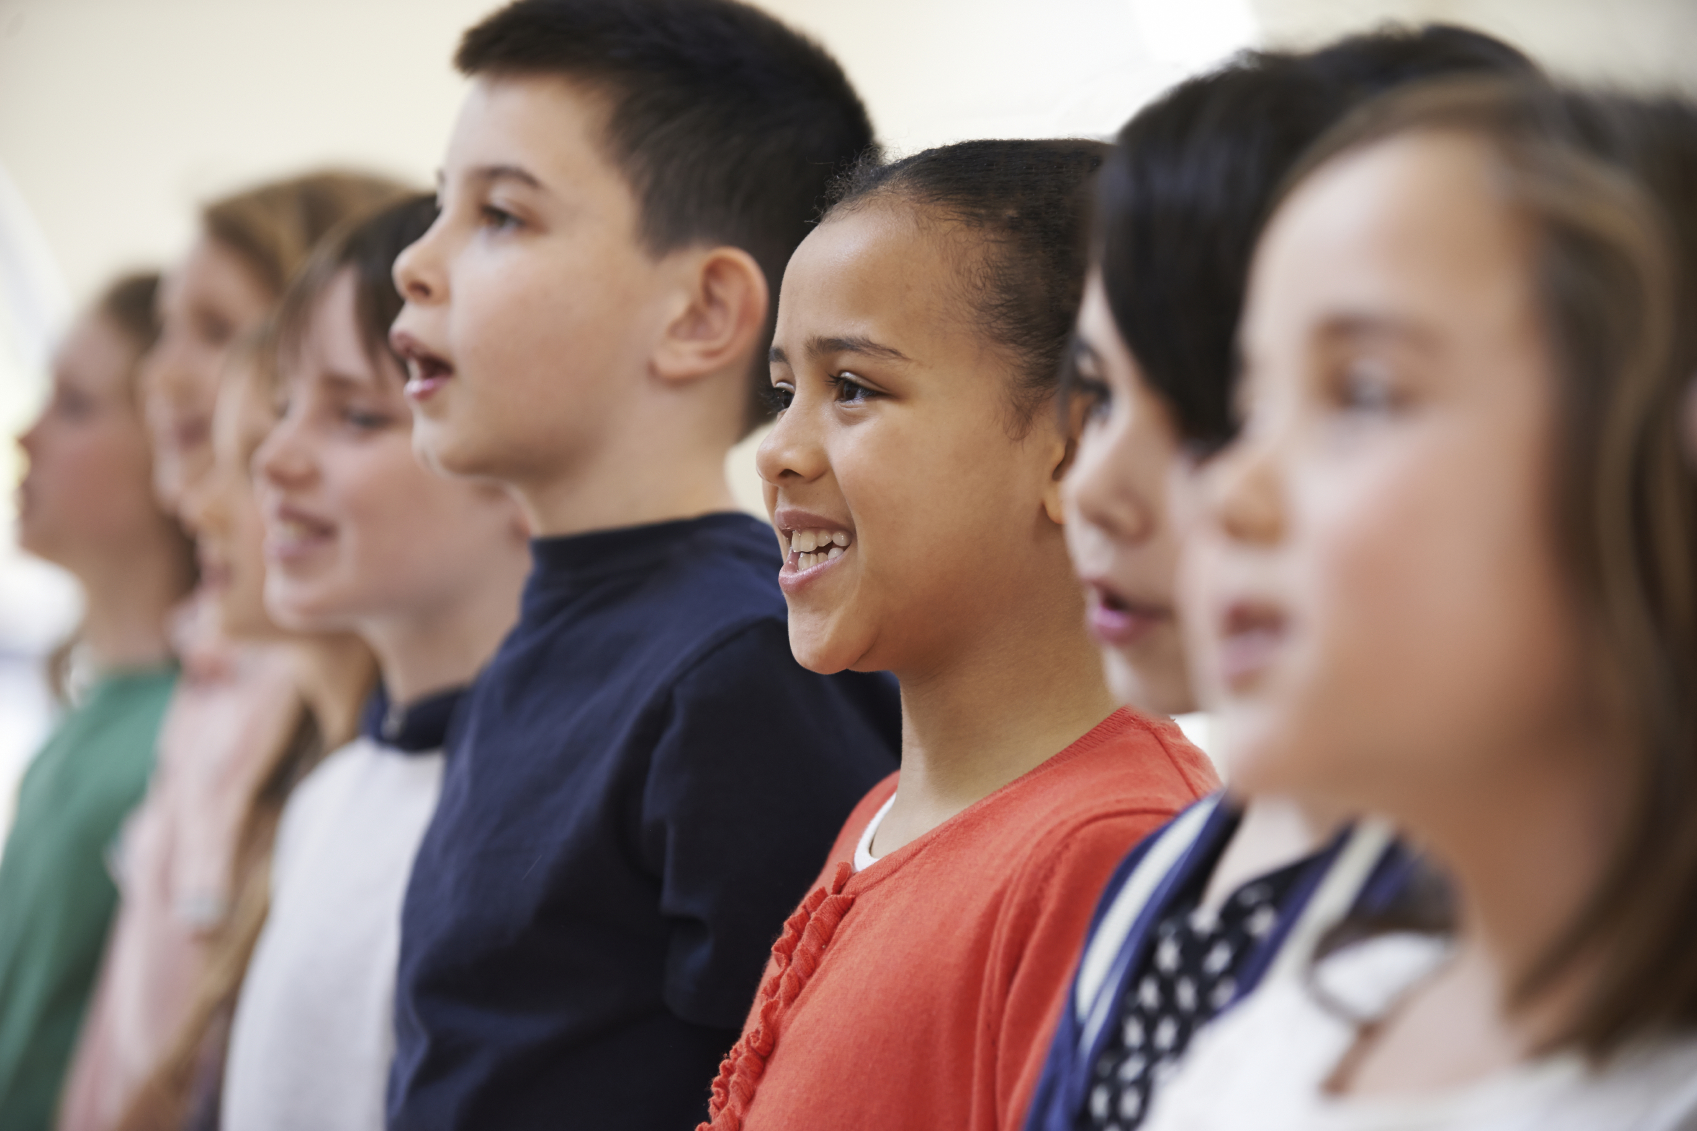 Camp Description - Kids will learn harmony singing and dancing skills in a high-energy choir environment. Gifted clinicians will teach voice, piano, guitar, drum, and dance in small group sessions. Kids will come away from this impactful experience with a better understanding of their own musical gifts and interests.